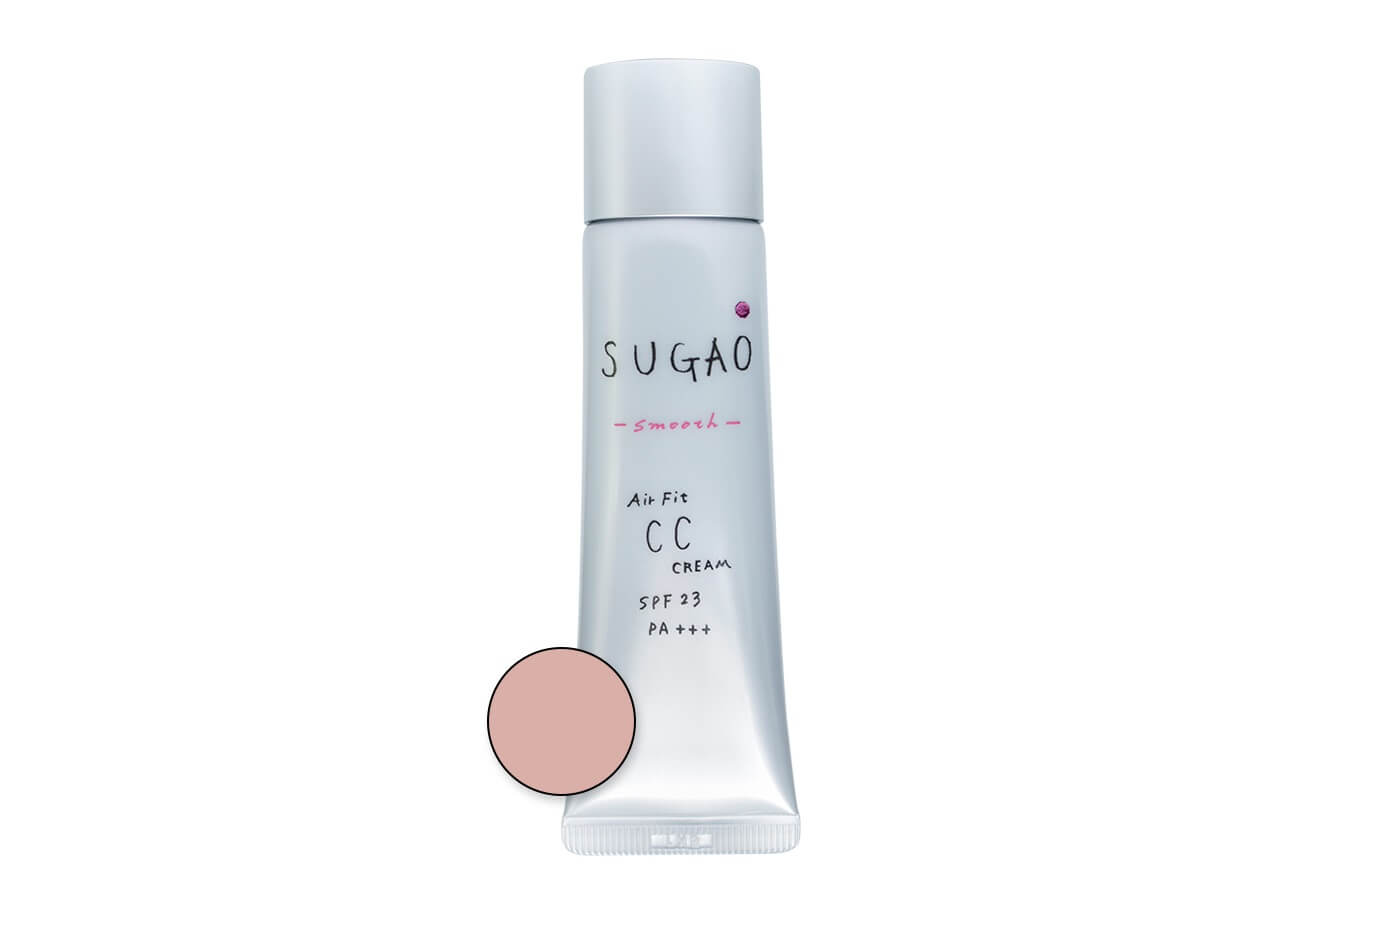 Sugao Air Fit CC Cream Pure Ochre